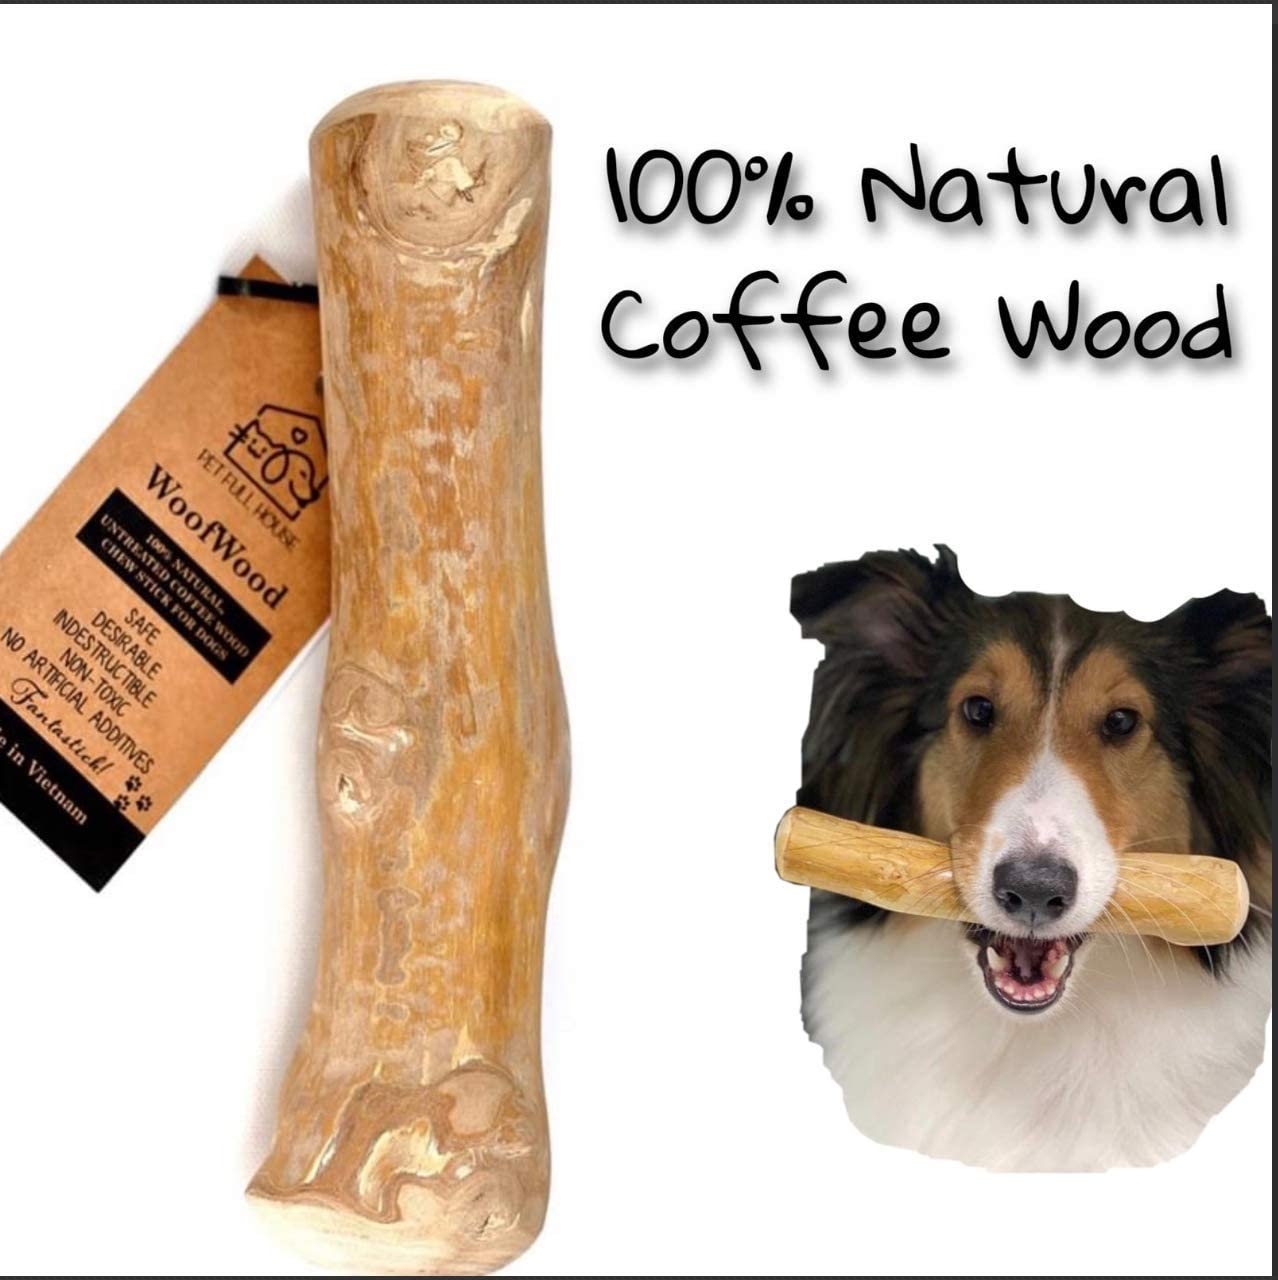 Pet Full House WoofWood Dog chew Sticks, Safe, Natural & Healthy chew Toys, Real Coffee Wood, Long Lasting, Durable chewable Stick and Toy, Aggressive chewers for Dogs